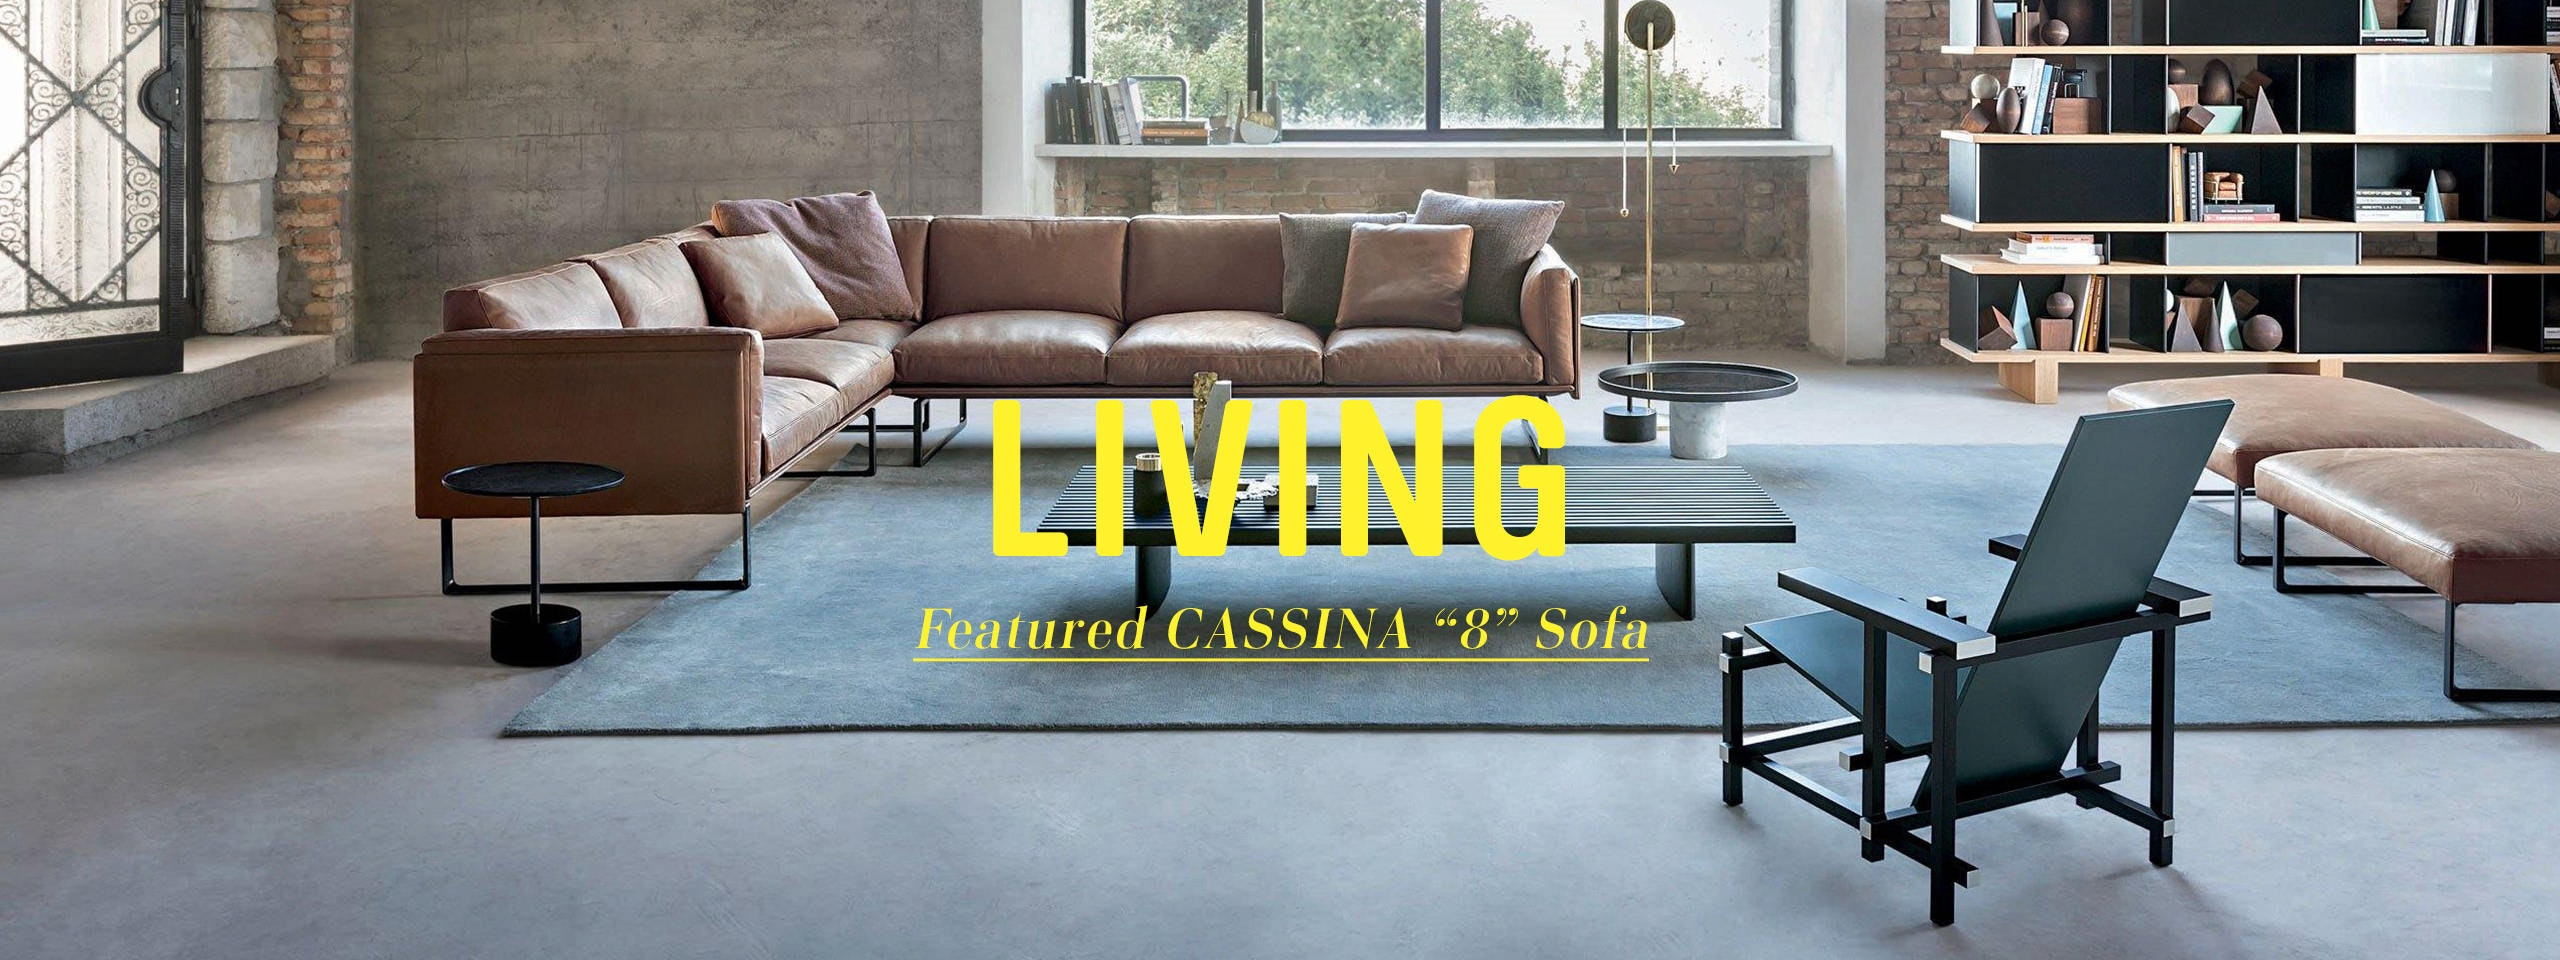 Living Room Furniture Designer Sofas Chairs Tables